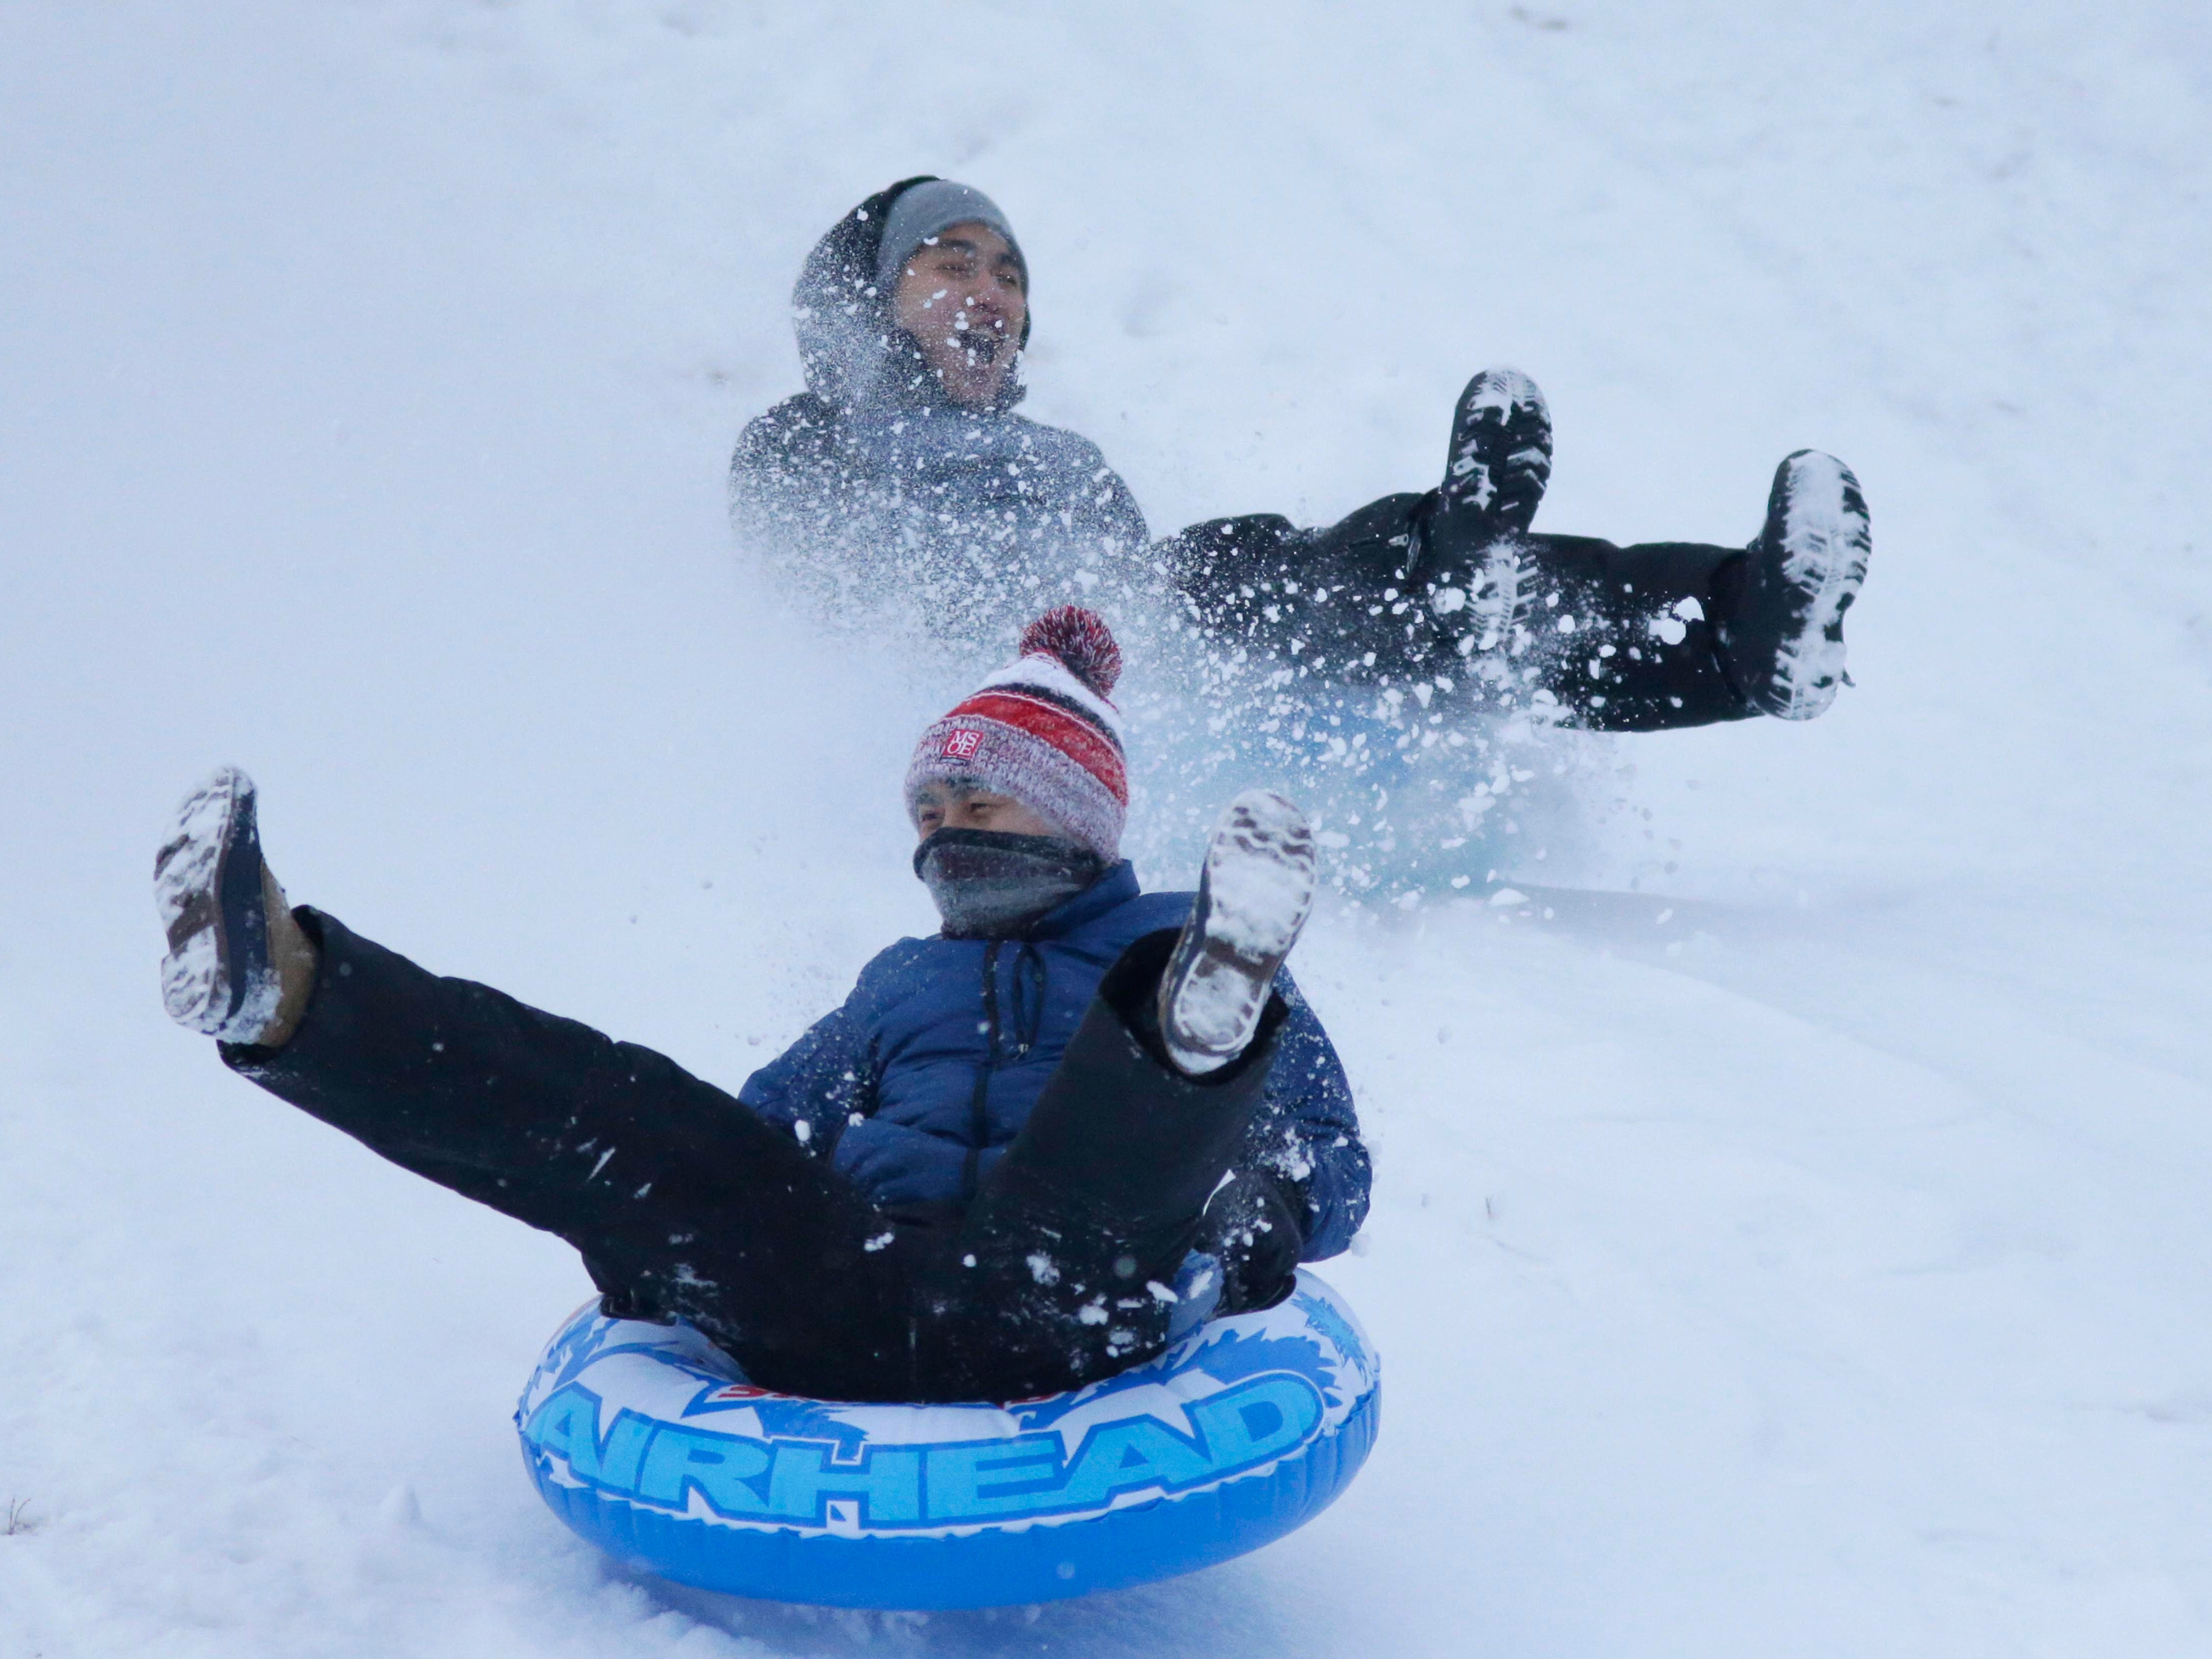 Andrew Yang, 19, and David Yang, 18, tube down Kiwanis Park, Wednesday, January 2, 2019, in Sheboygan, Wis. The two decided to get in some fun with the fresh snow.